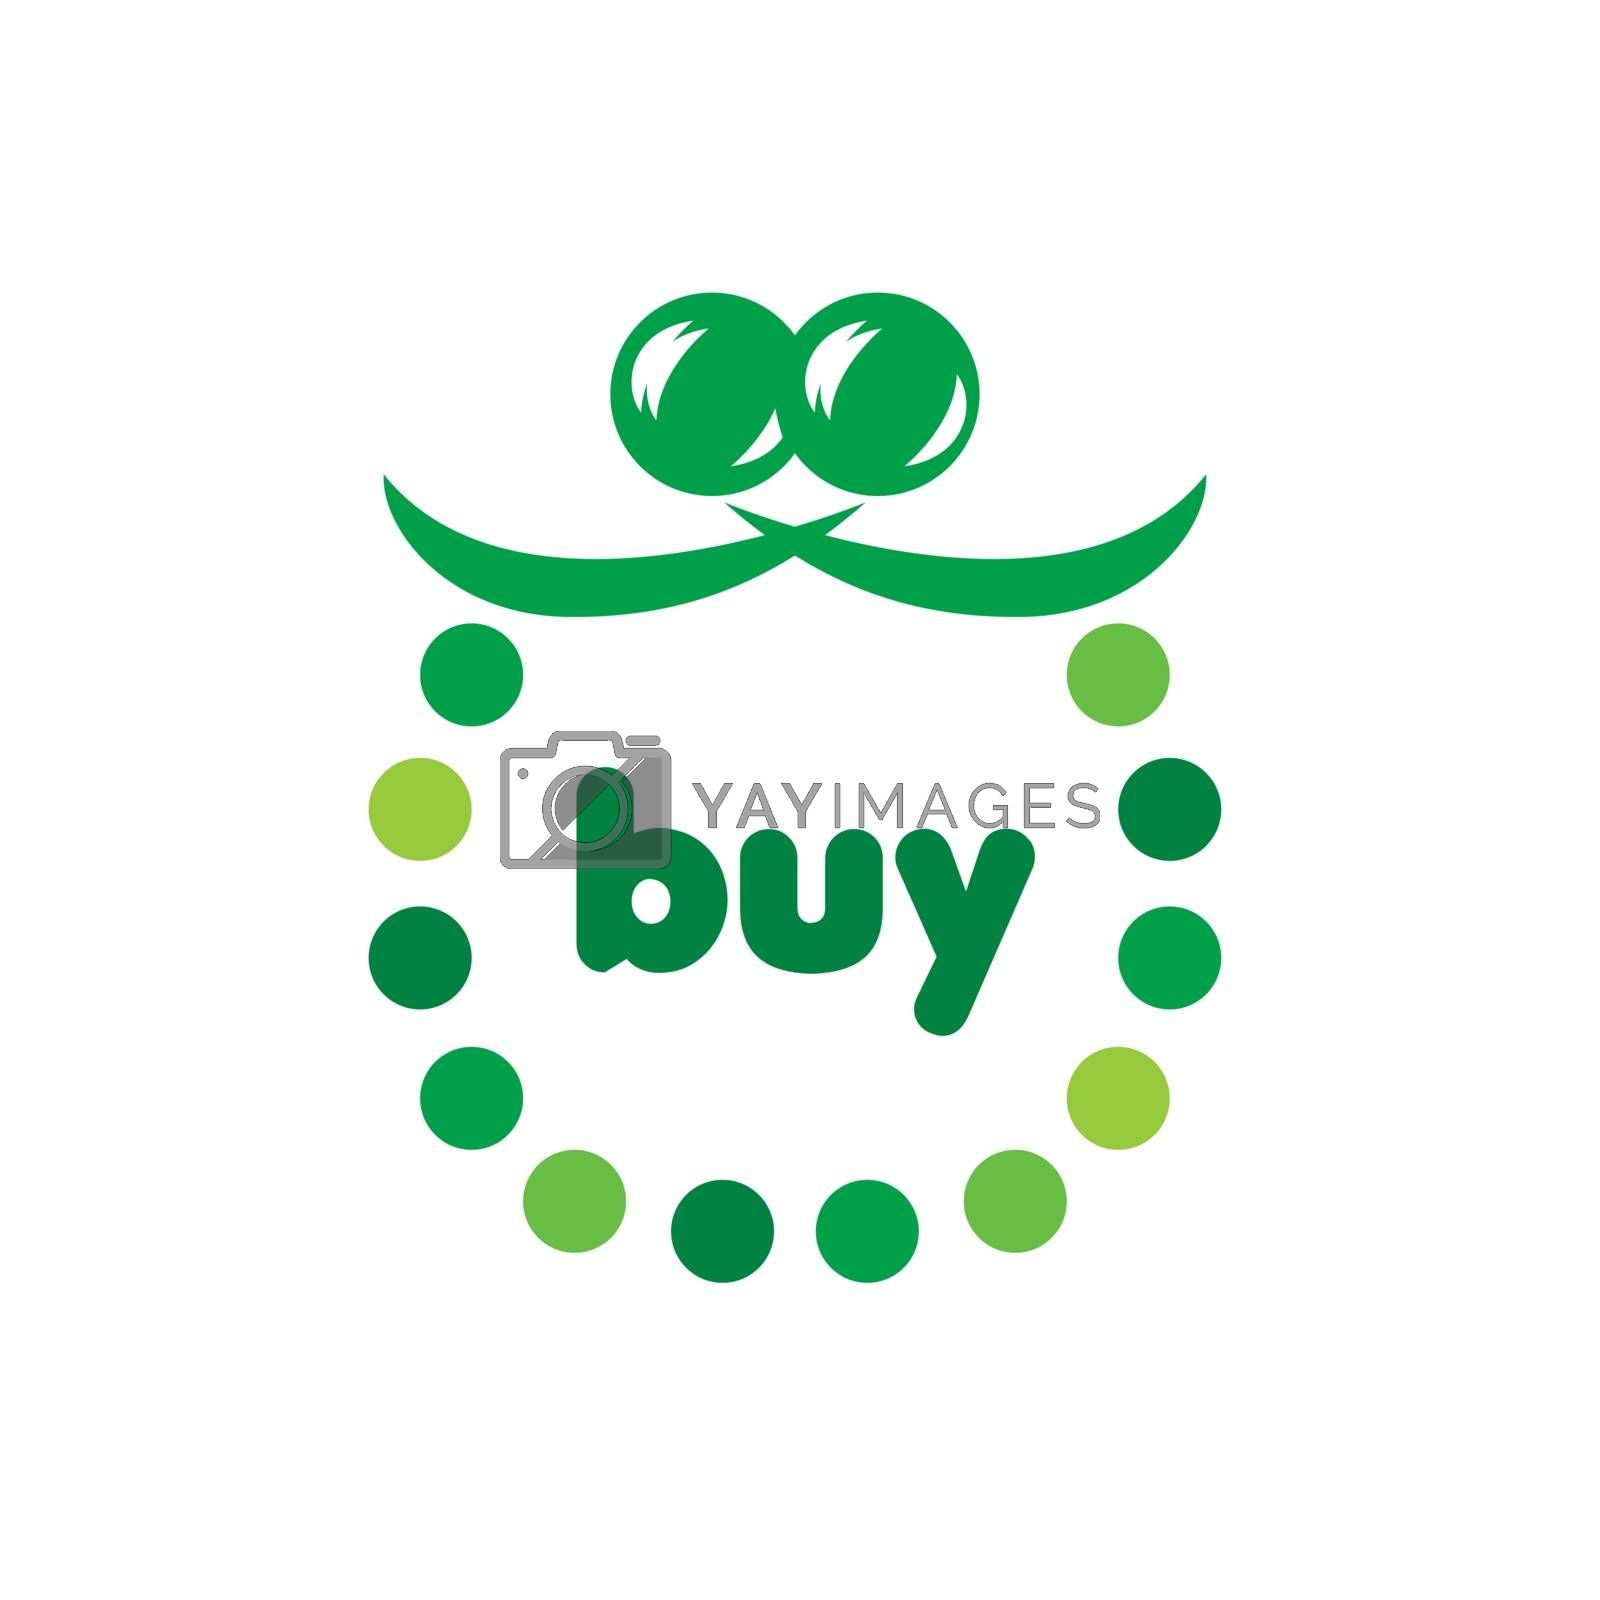 vector logo green purse circles